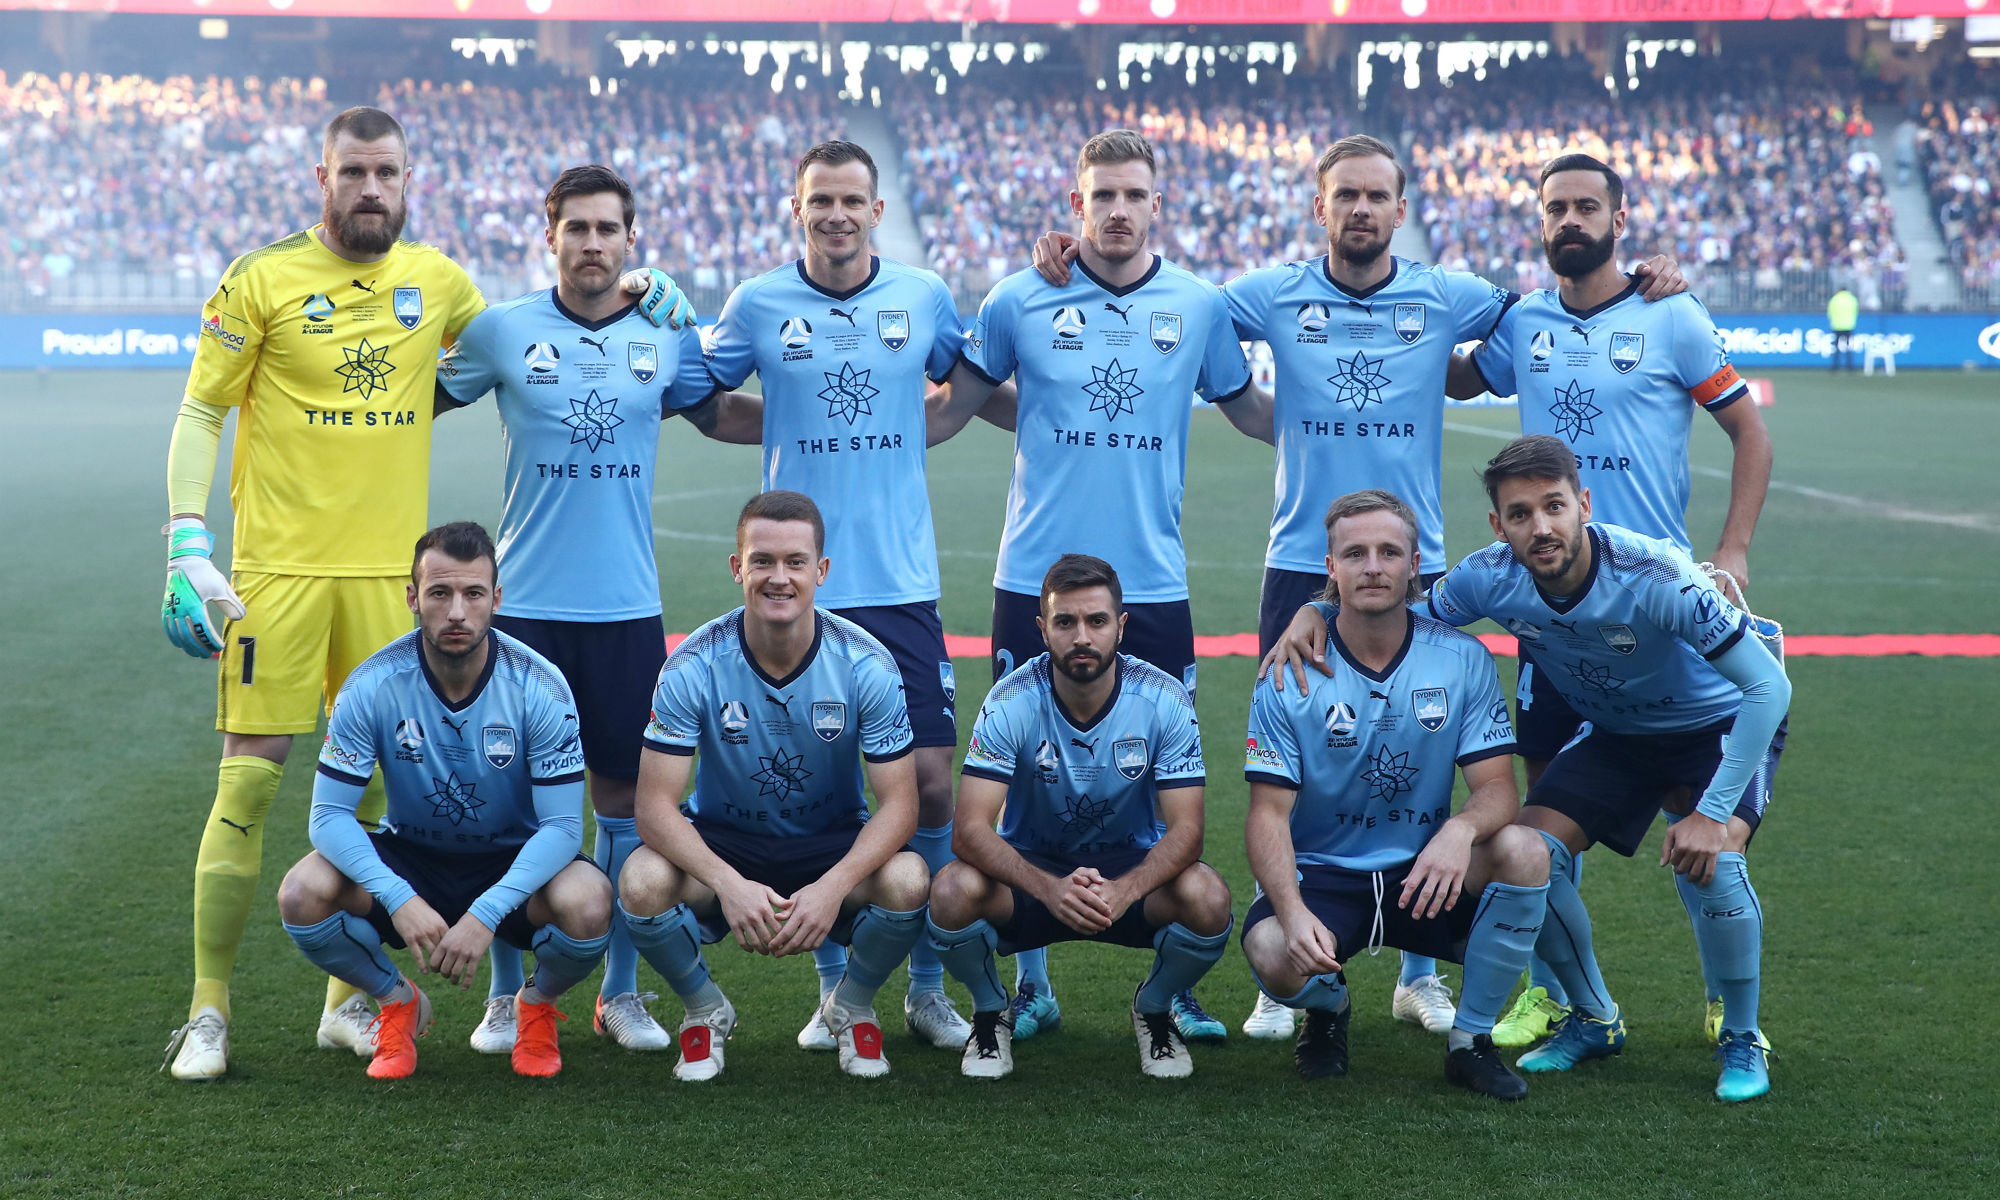 Rhyan Grant and Andrew Redmayne line up for Sydney FC in the Hyundai A-League Grand Final 2018/19